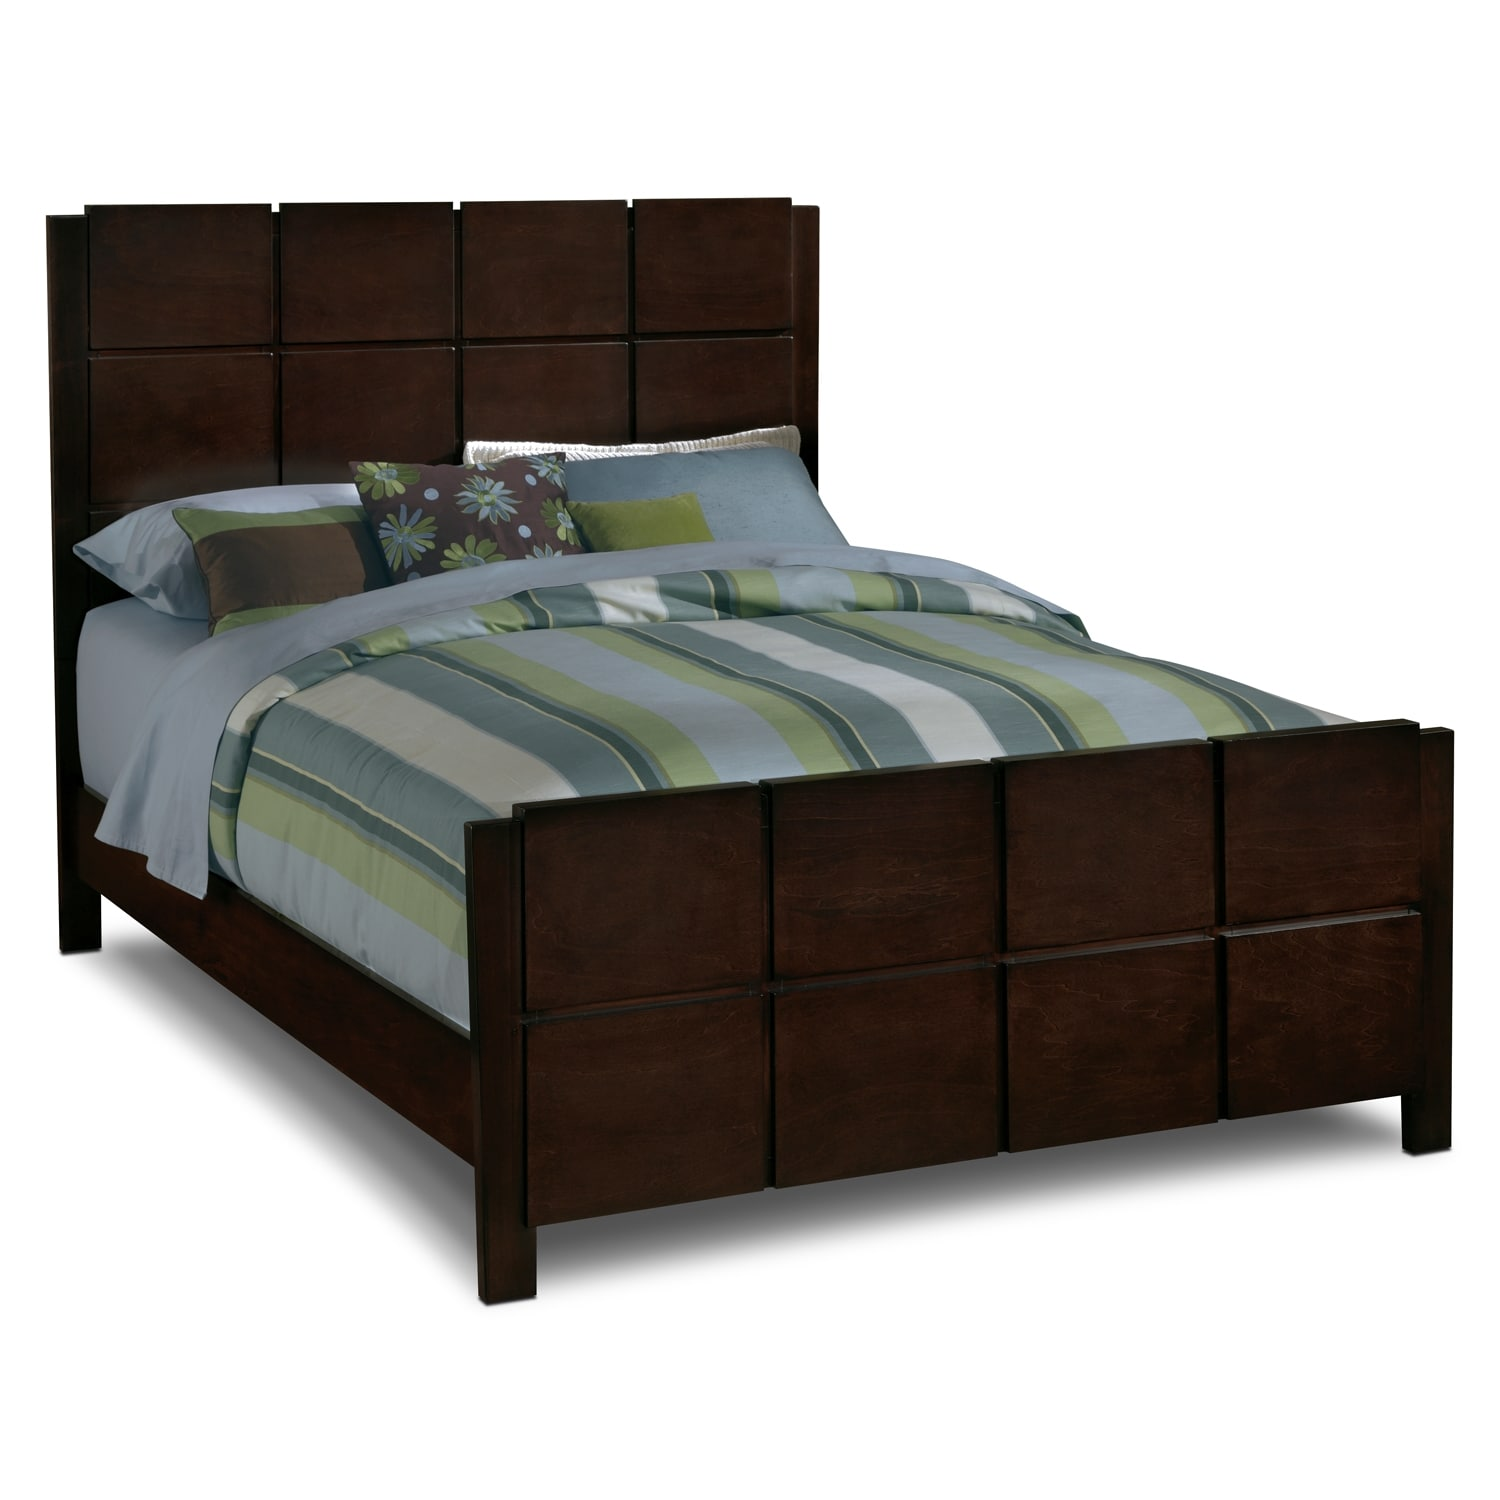 Mosaic King Bed - Dark Brown